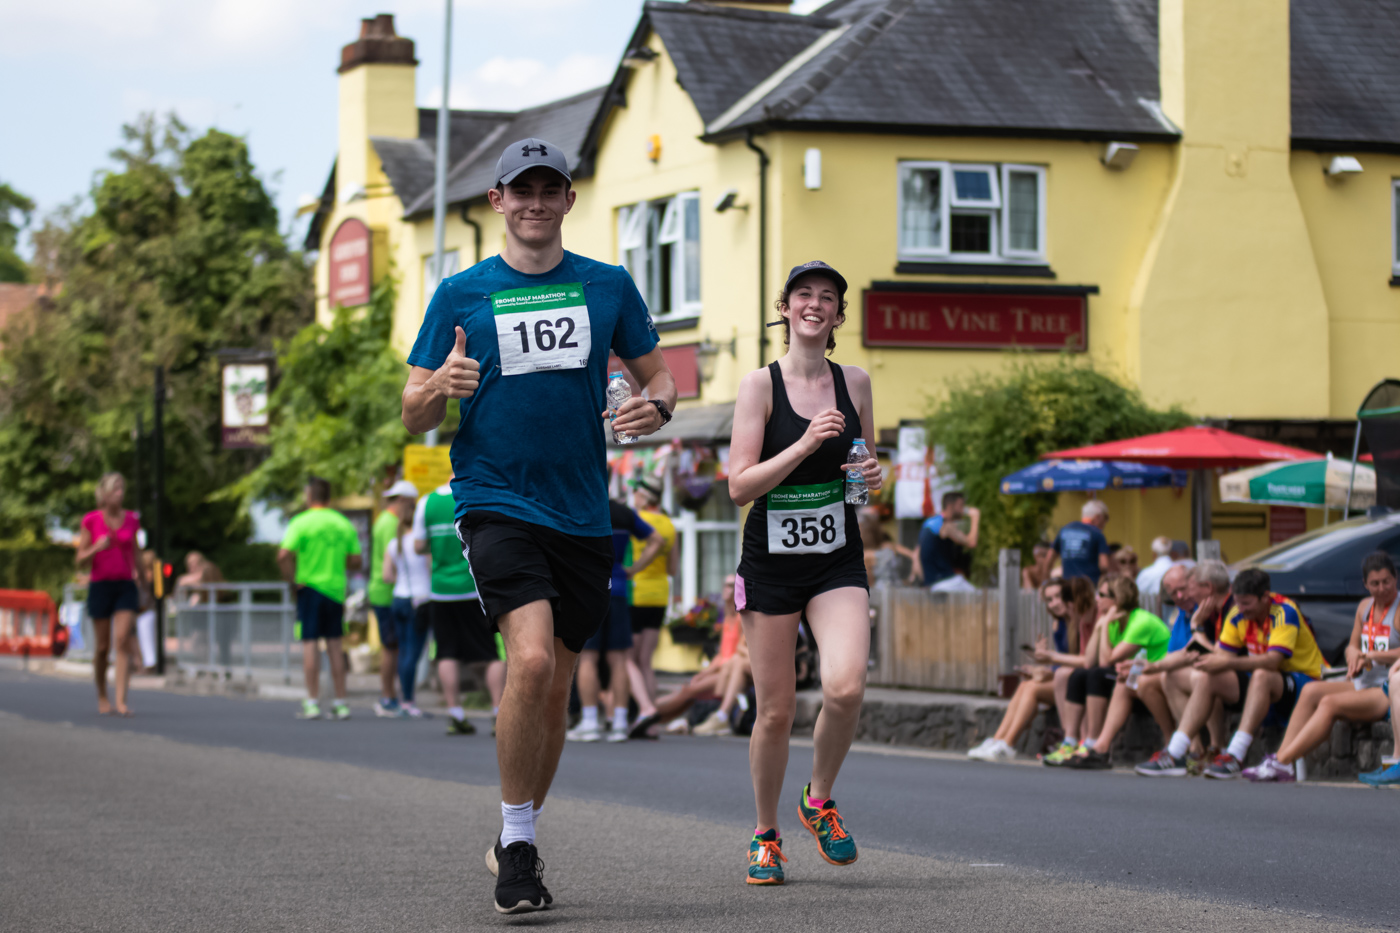 Frome Half Marathon, 10K, 5K and Family Fun Run - cover image